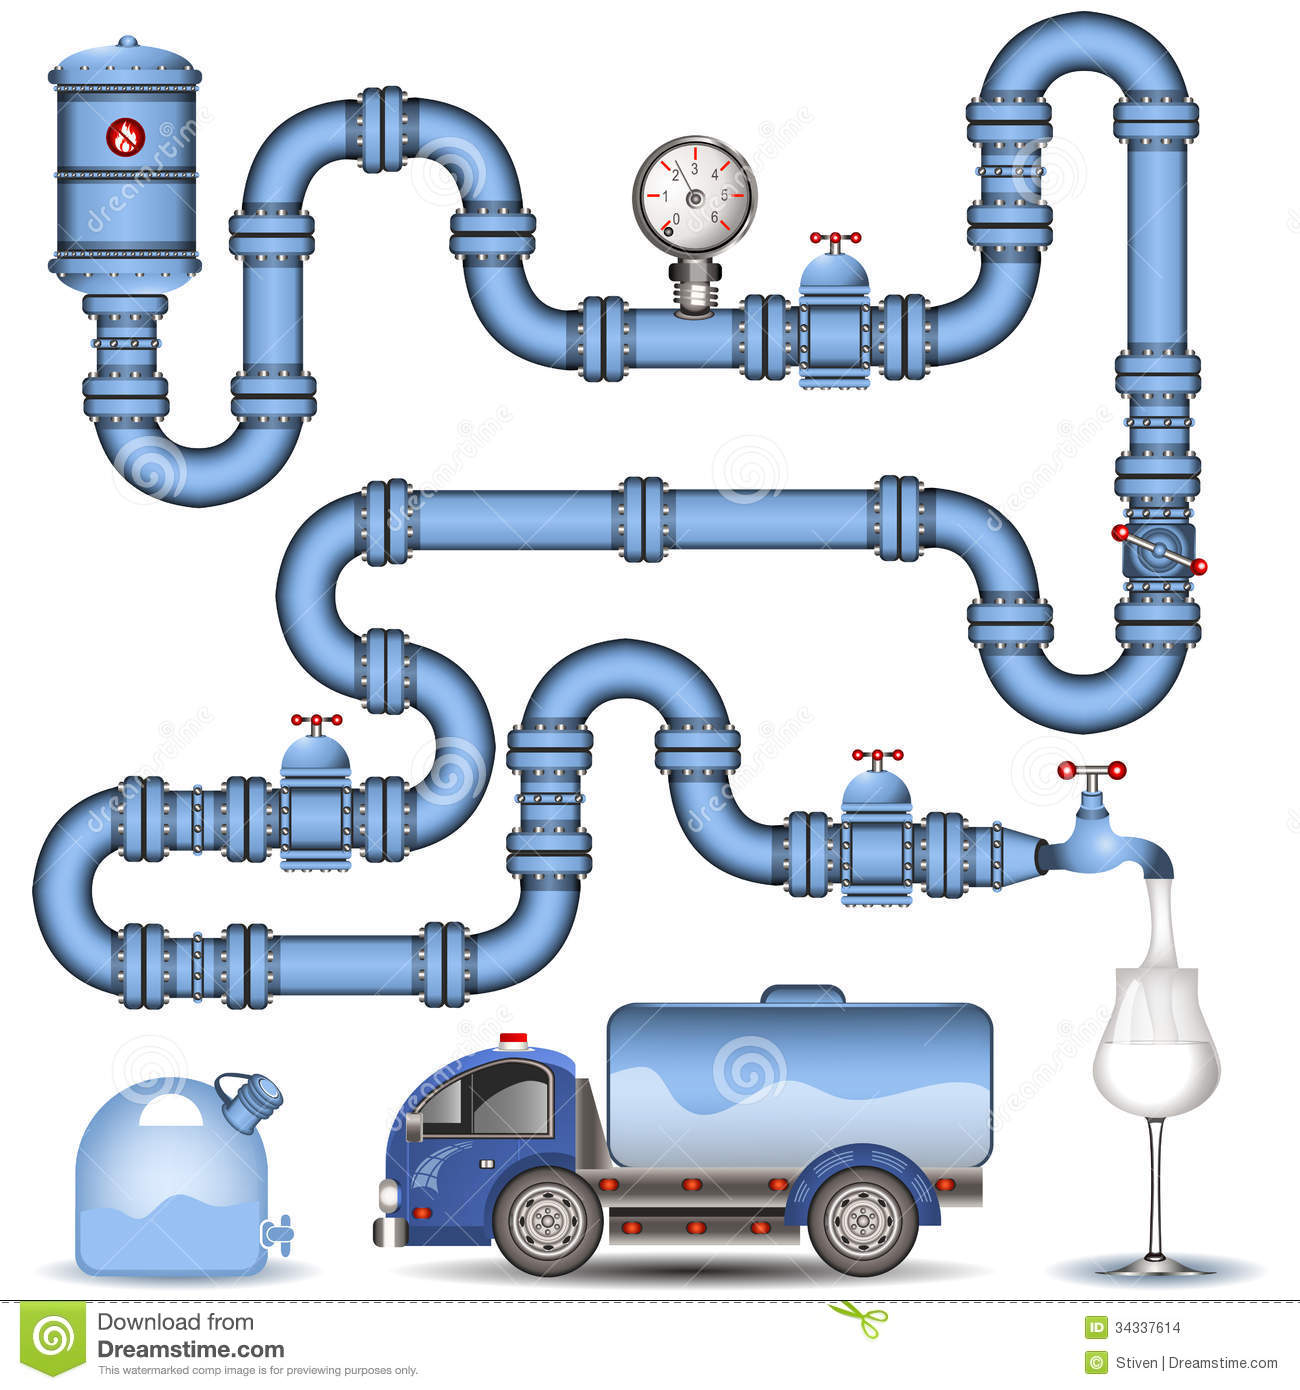 Gas Pipeline Clip Art - Bing images